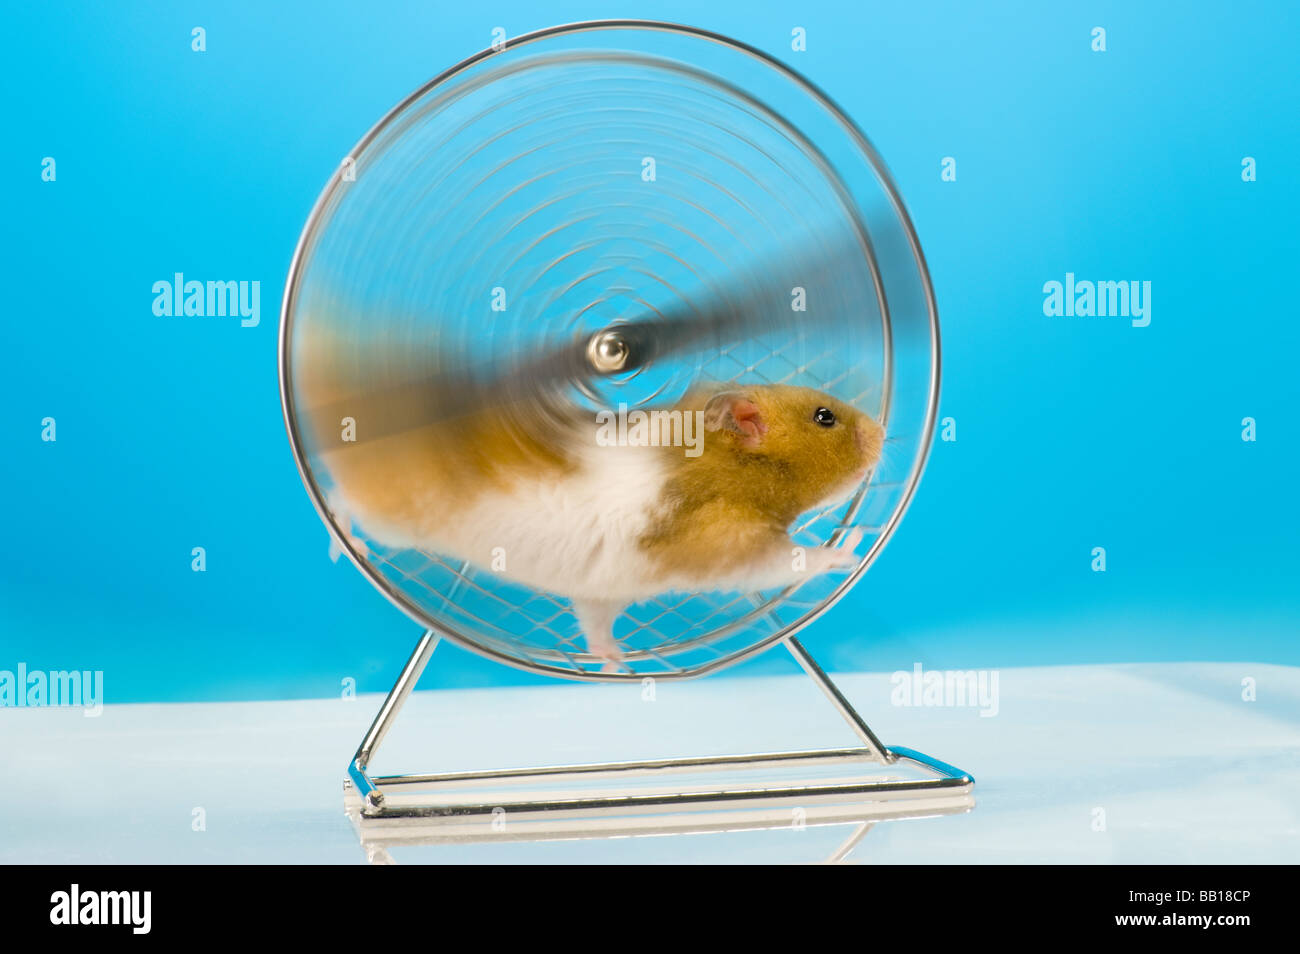 Funny Goldhamster Hamster Wheel Speed High Play Playground